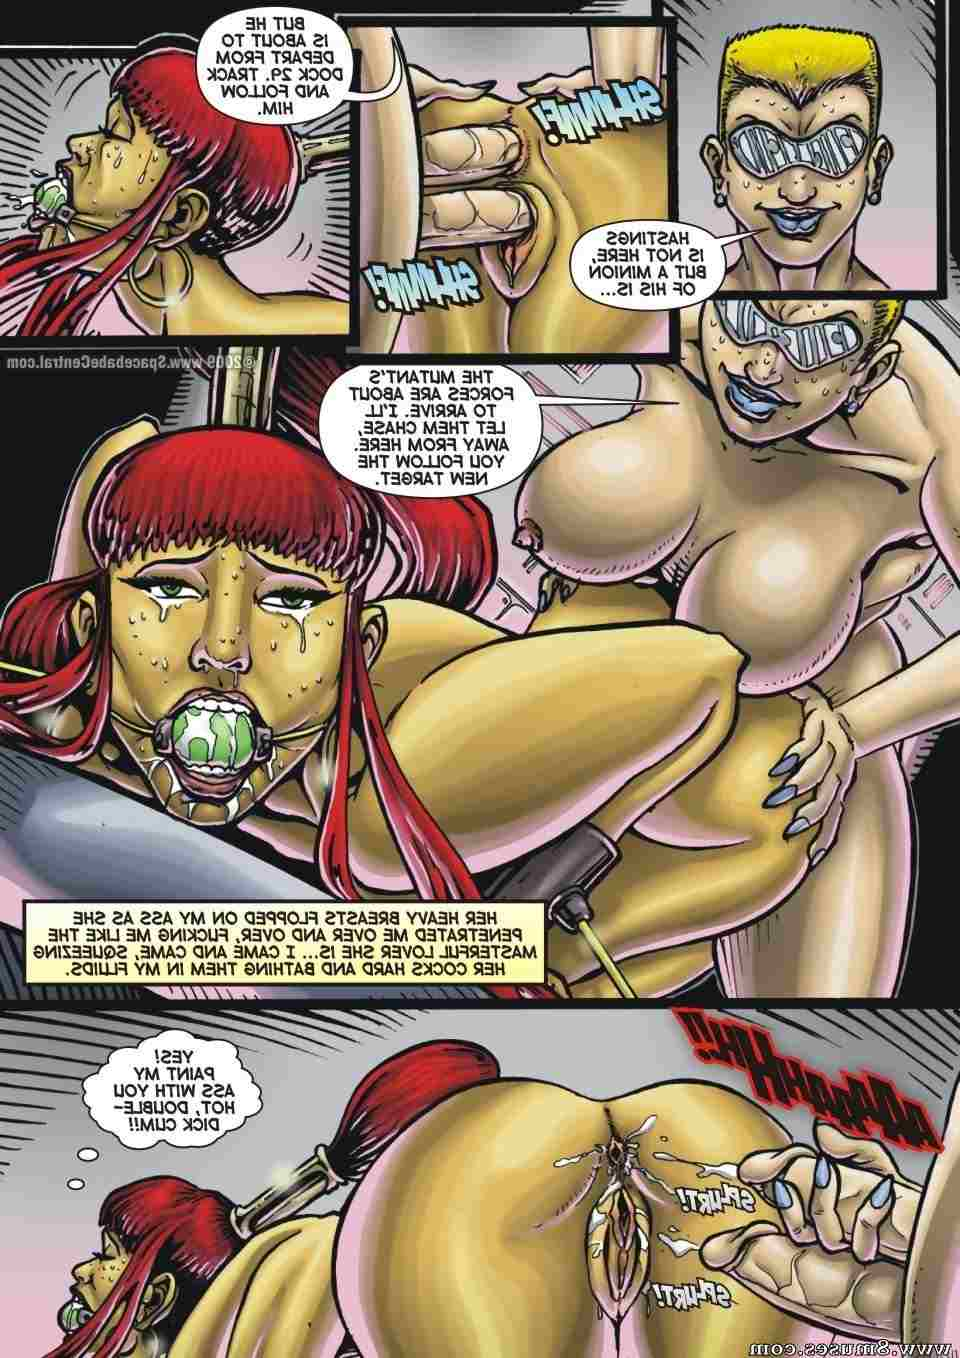 Central-Comics/Space-Babe-Central/Alien-Huntress Alien_Huntress__8muses_-_Sex_and_Porn_Comics_54.jpg